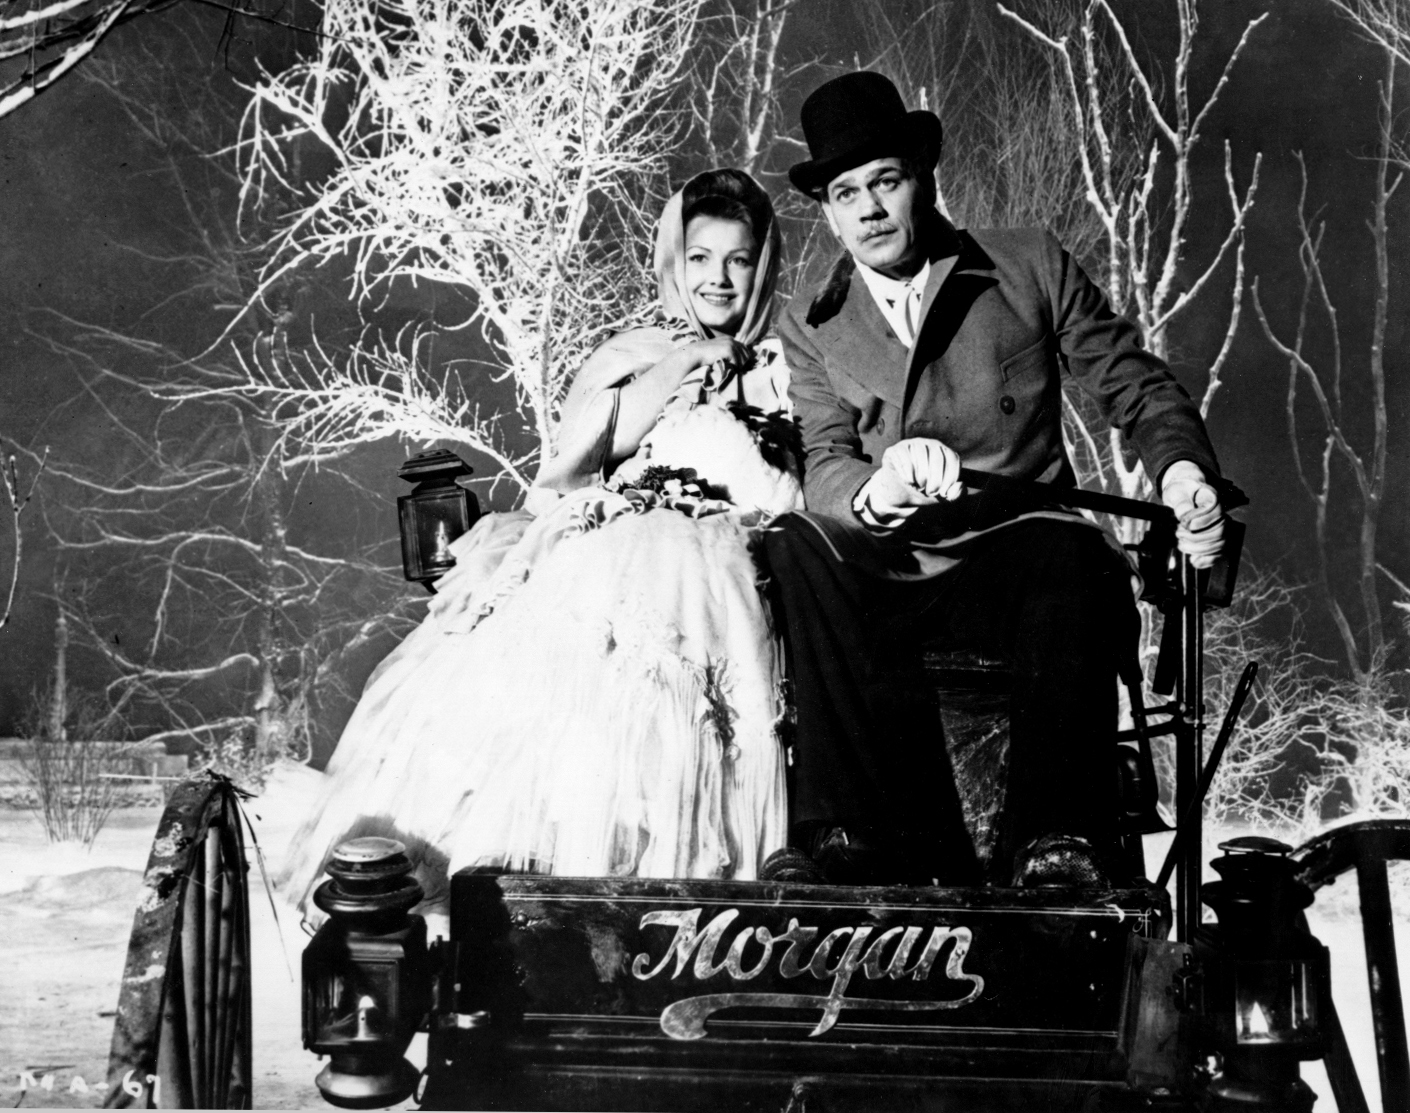 Anne Baxter and Joseph Cotten in The Magnificent Ambersons (1942)